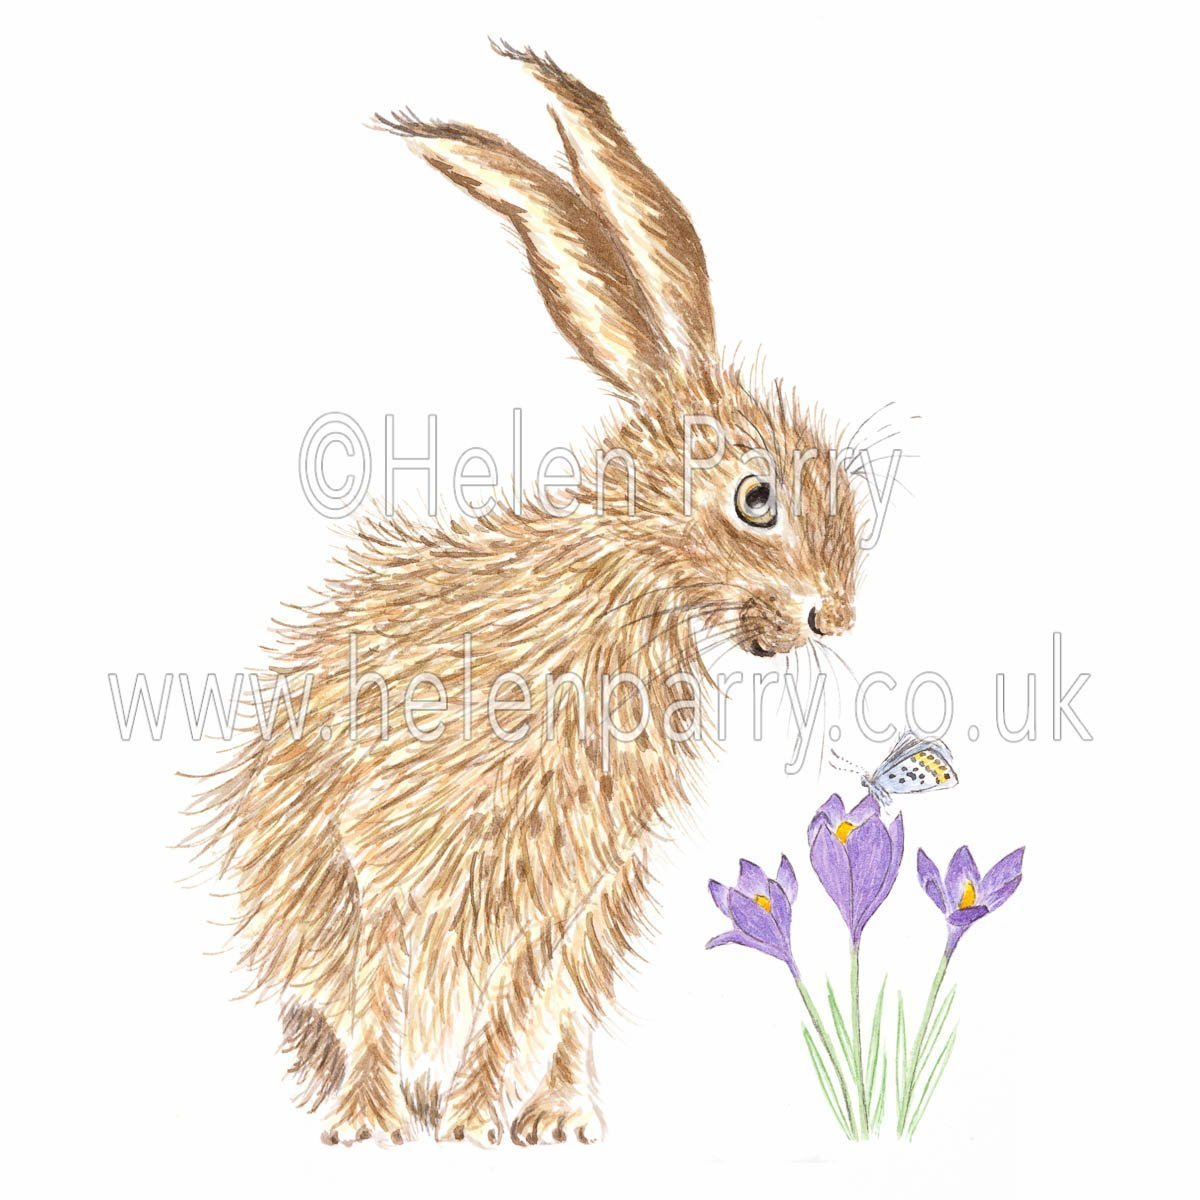 greeting card of hare leaning over watching butterfly on crocus flower